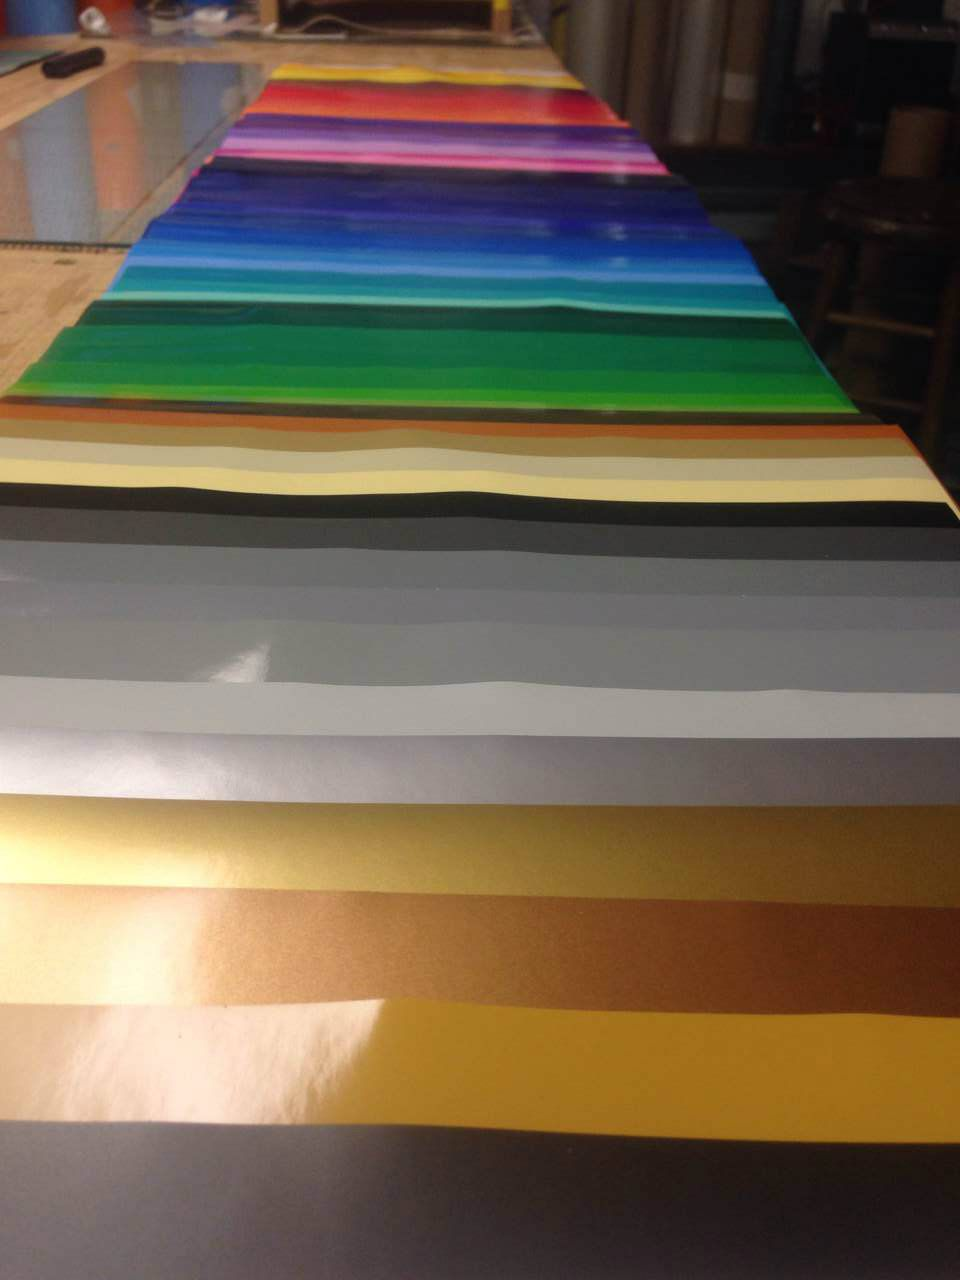 Oracal 651 Adhesive Vinyl All Color Bundle 63 Colors 12 X 12 Sheets Adhesive Vinyl Oracal All The Colors